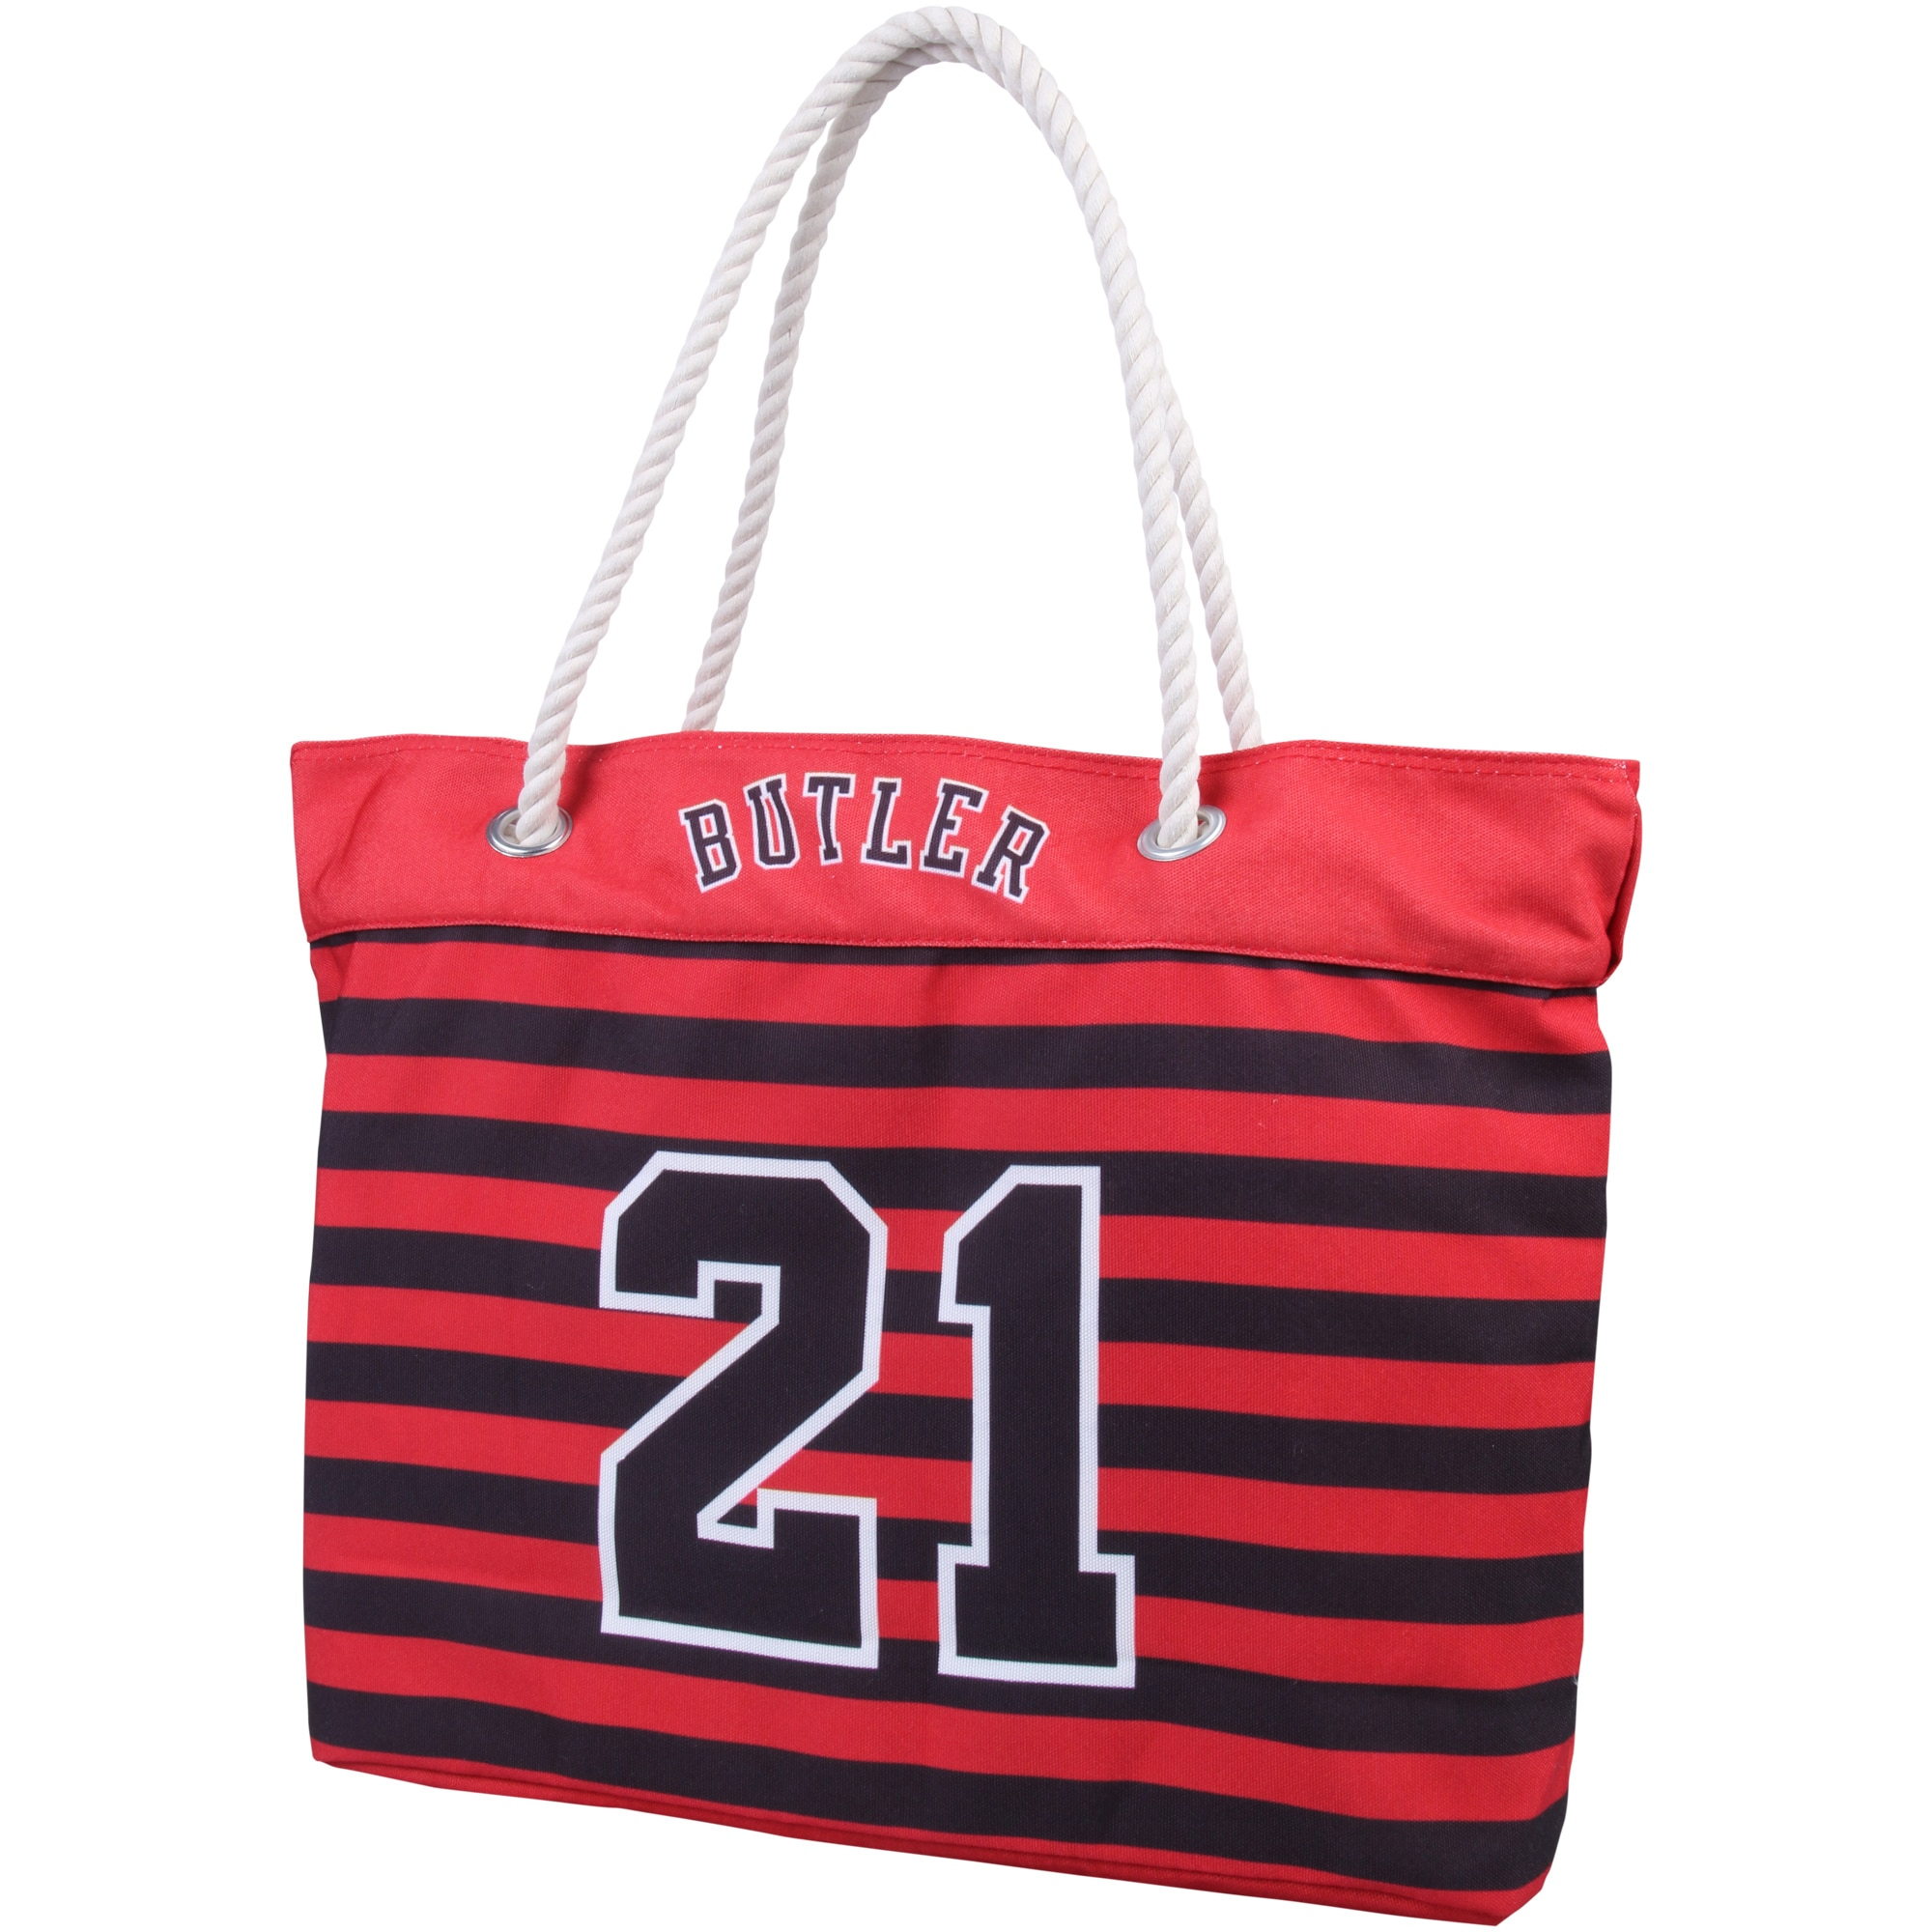 Jimmy Butler Chicago Bulls Women's Player Nautical Stripe Tote Bag - Red